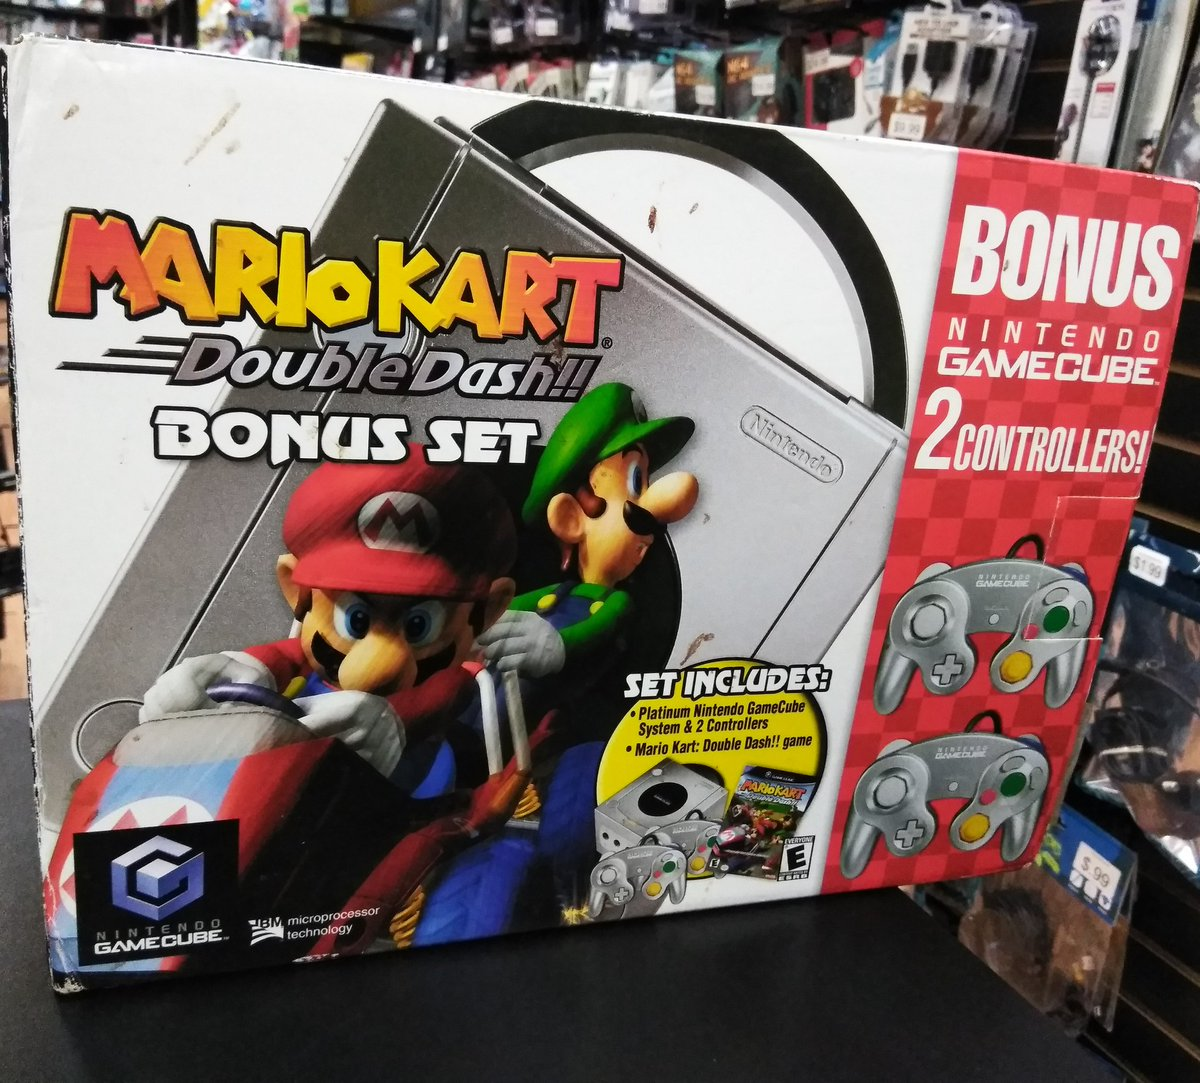 Level Up On Twitter We Just Got In This Awesome Mario Kart Double Dash Gamecube Bundle Stop By The Store To Check It Out